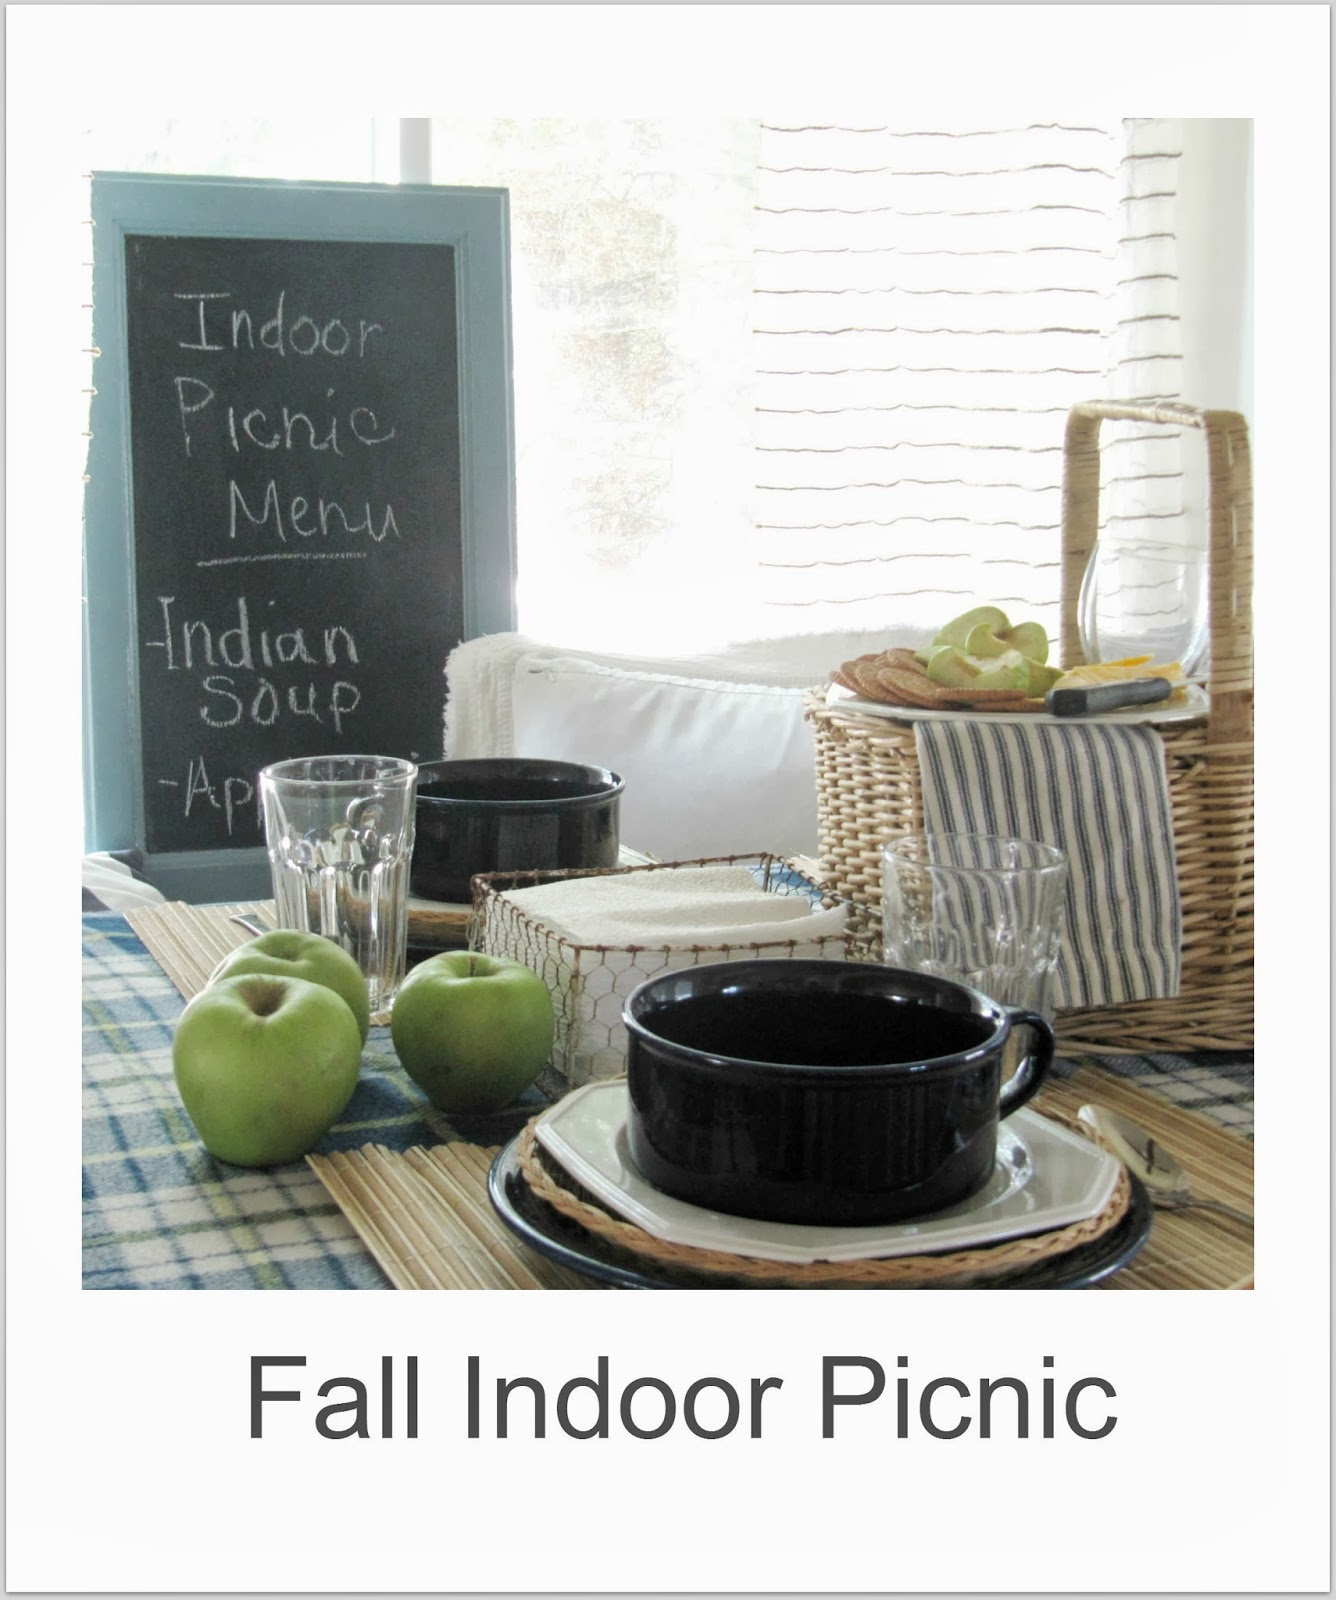 http://thewickerhouse.blogspot.com/2012/09/fall-indoor-picnic.html